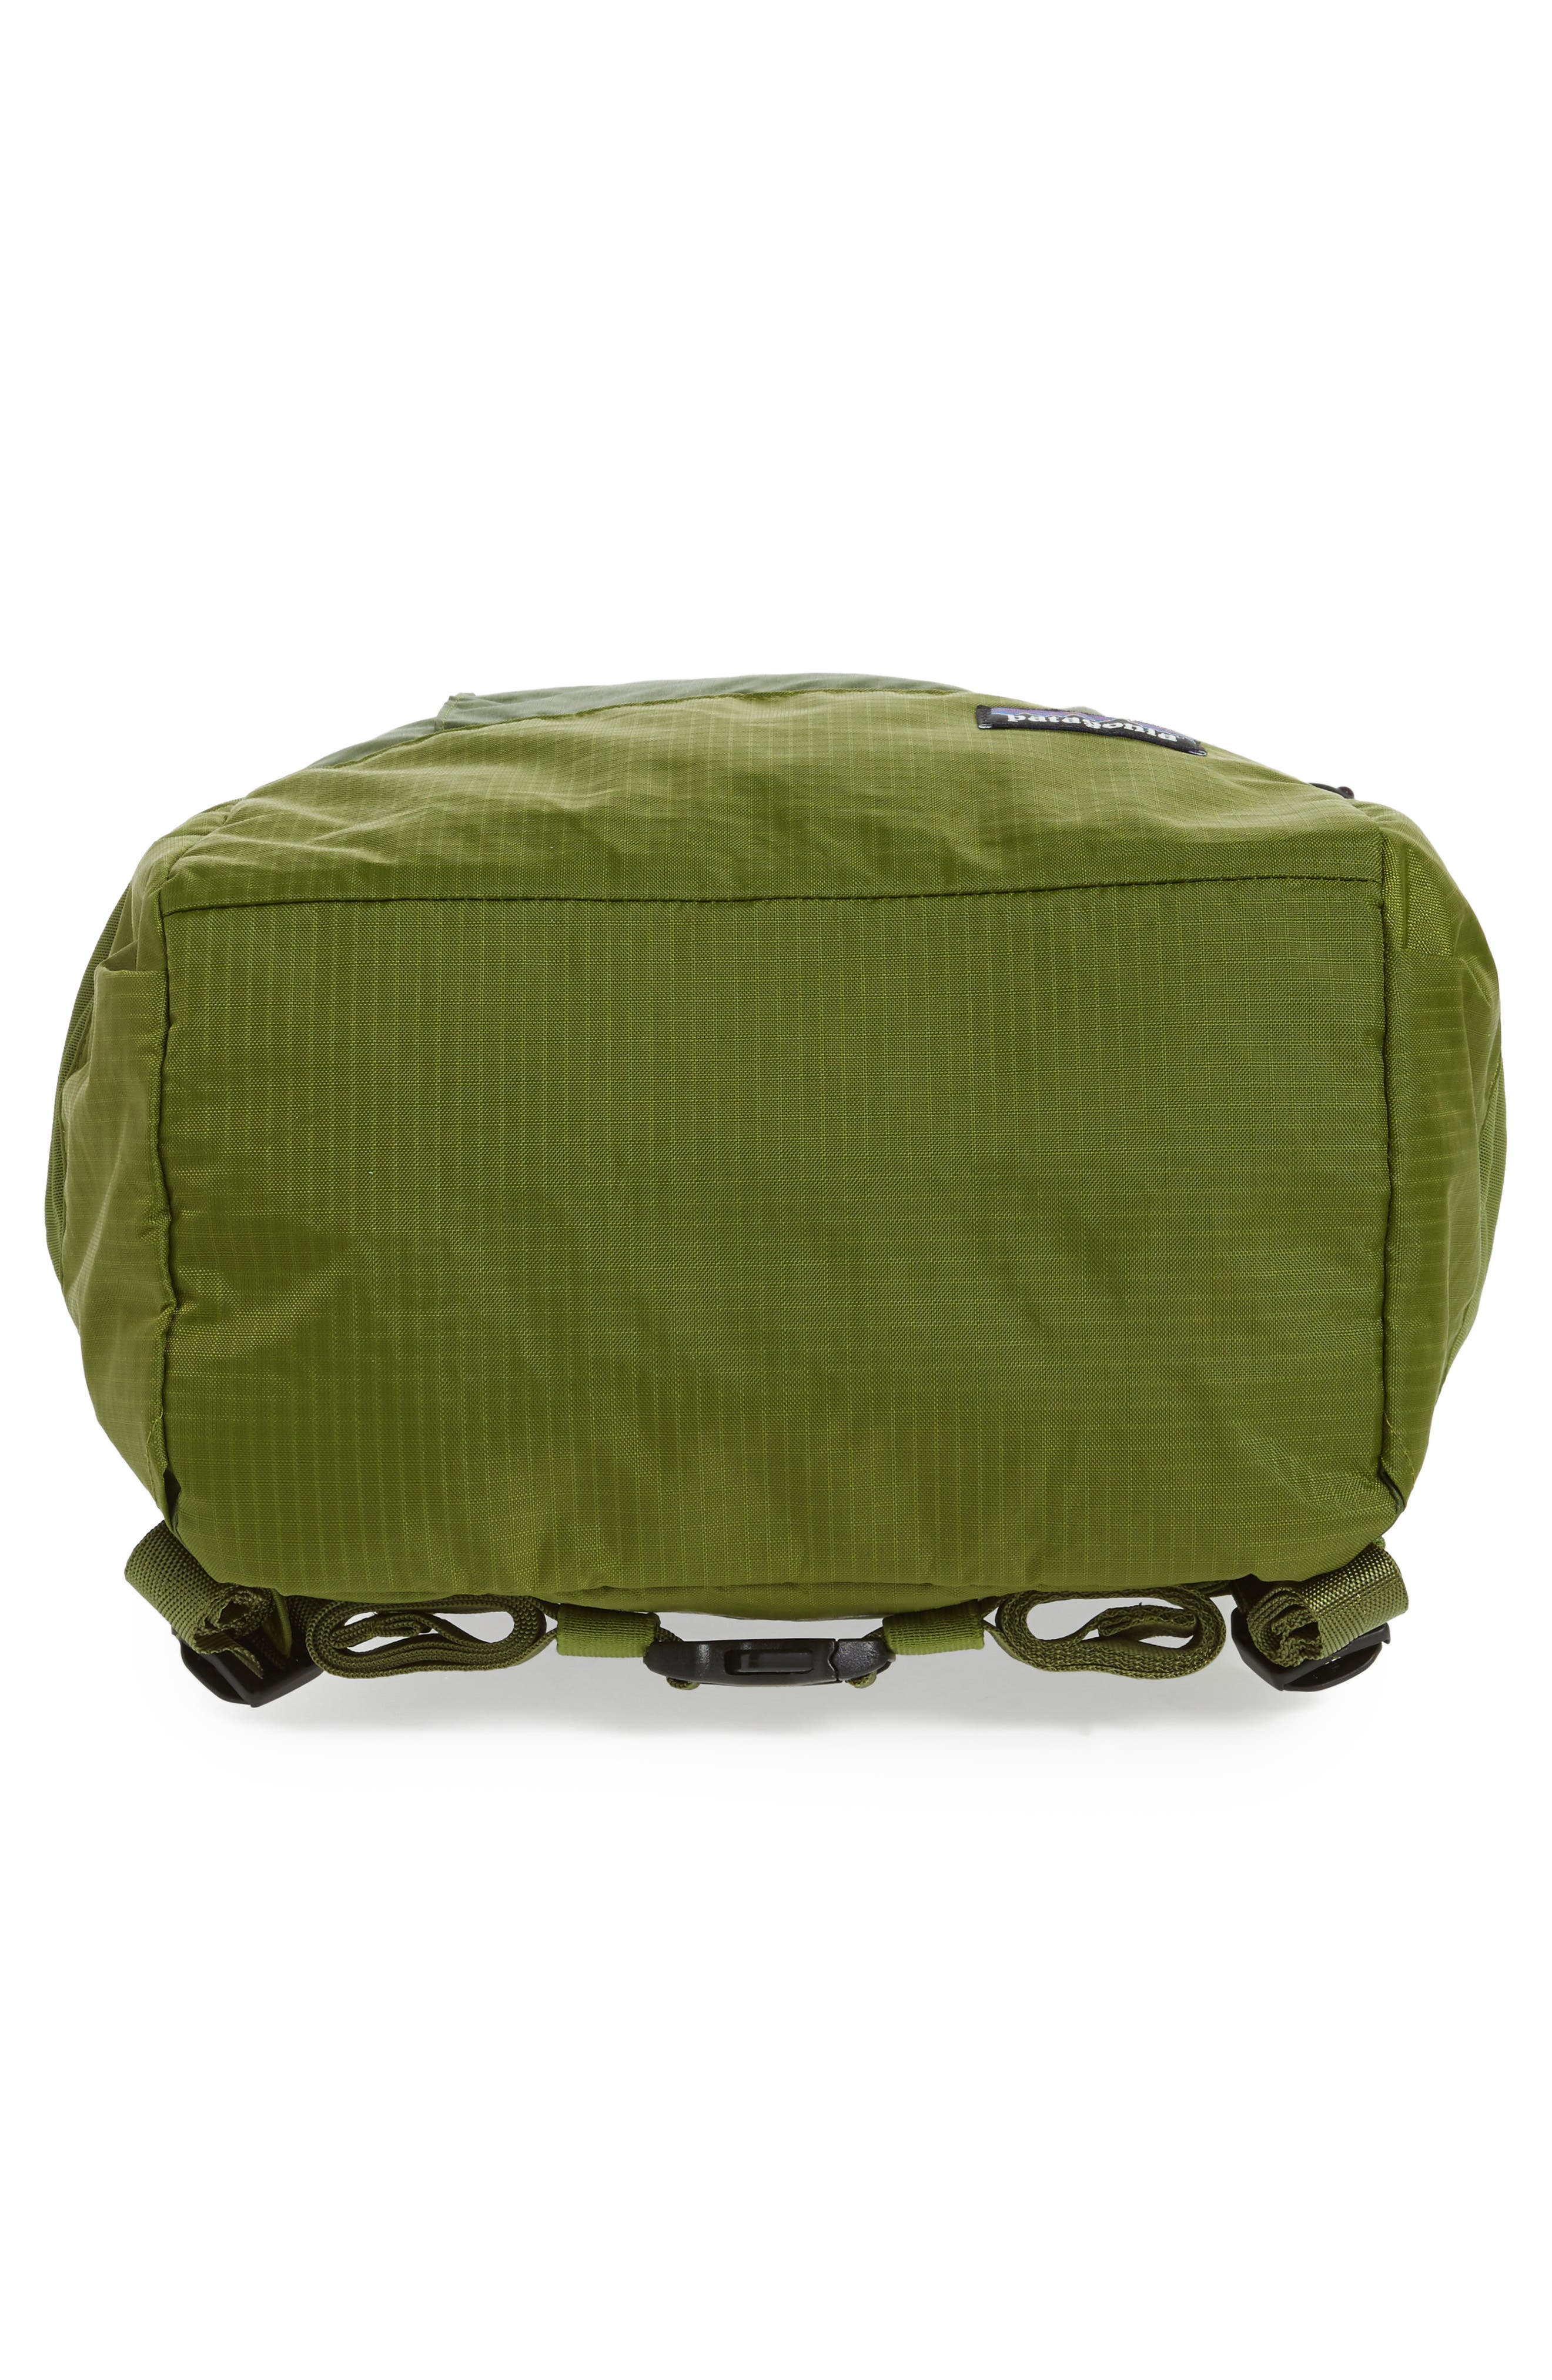 Lightweight Travel Tote Pack,                             Alternate thumbnail 6, color,                             305